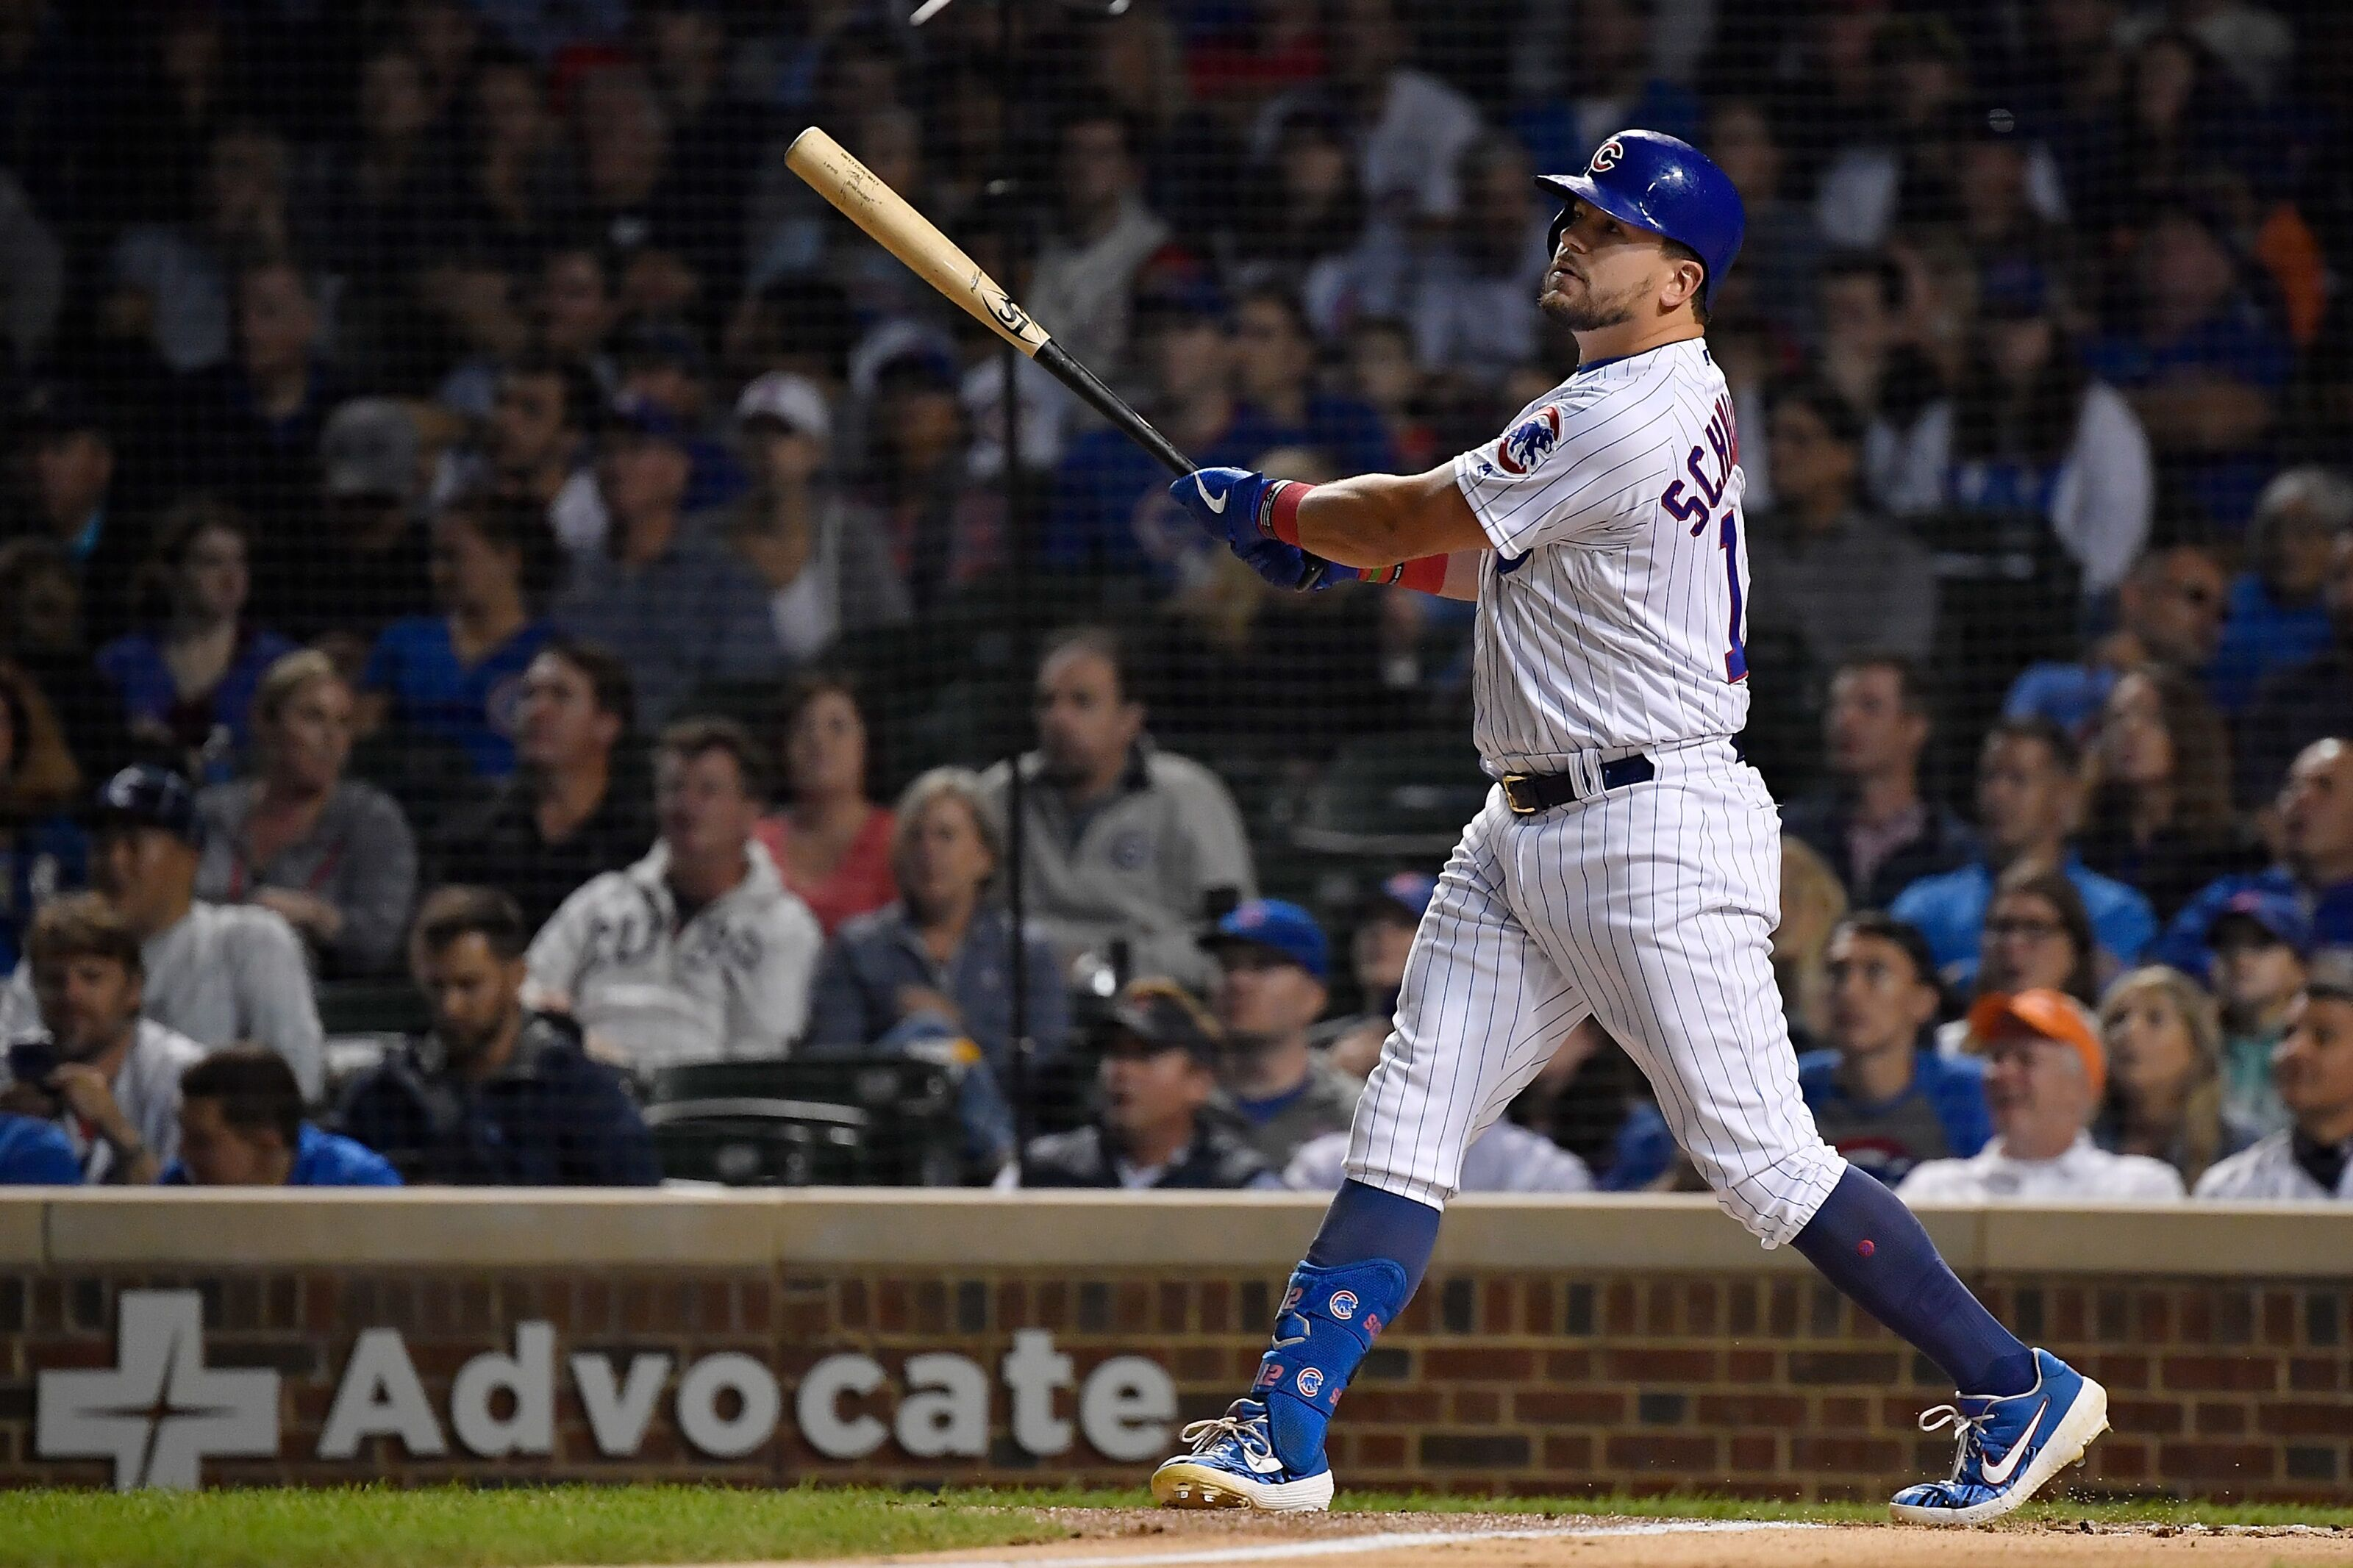 Chicago Cubs: What to do with lefty Kyle Schwarber